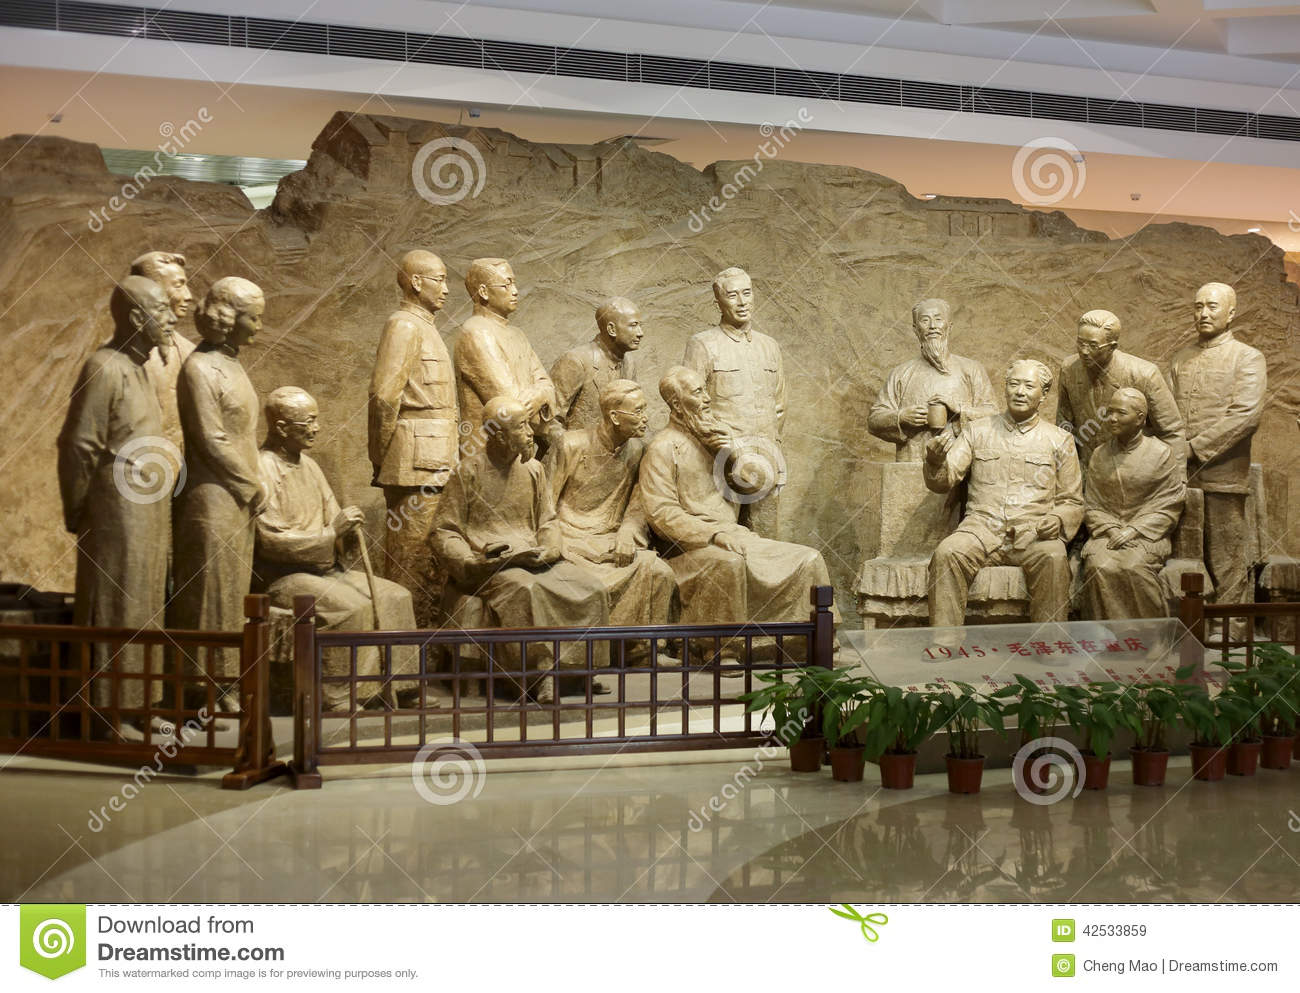 Mao and democratic parties leaders